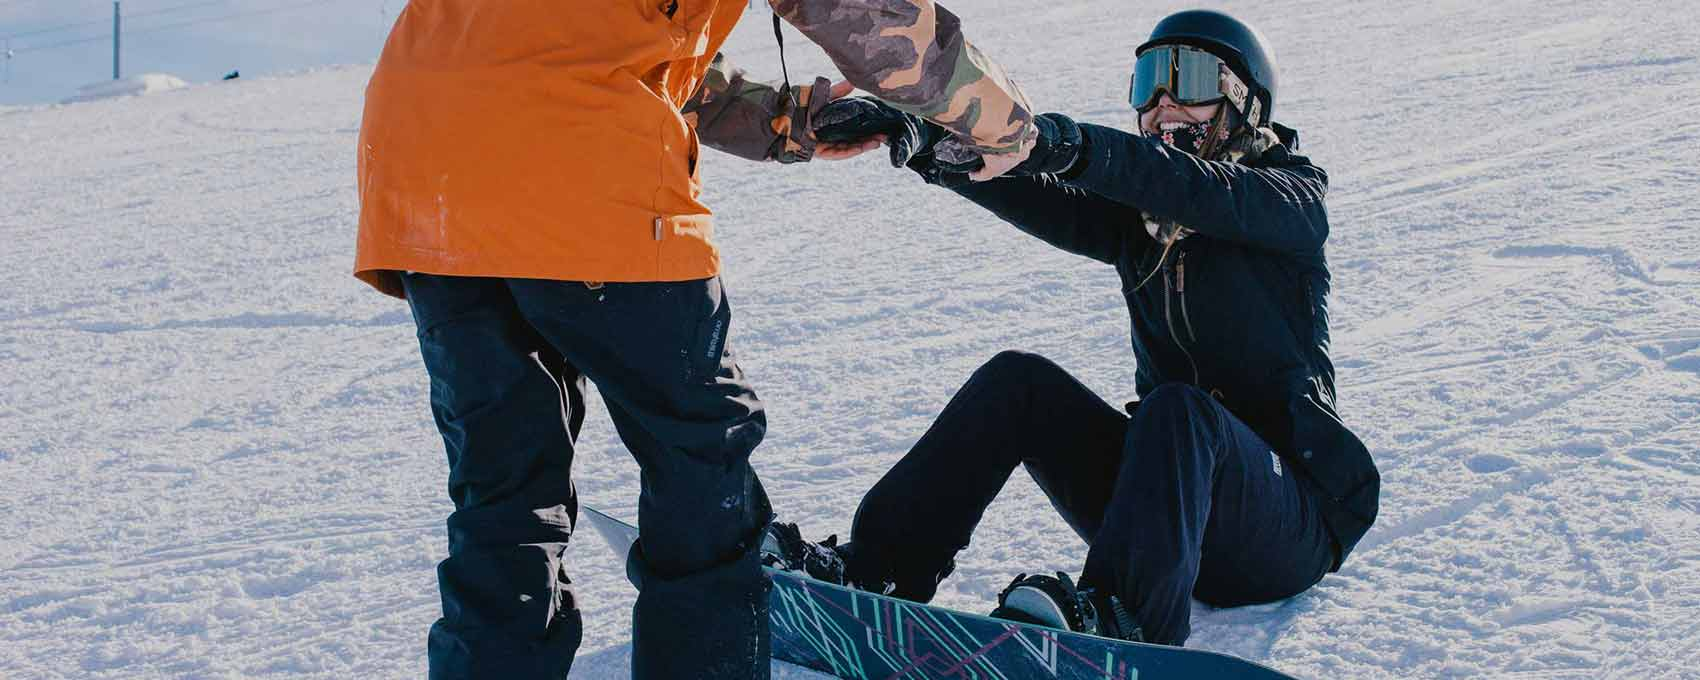 Find the best snowboard lesson in Morzine